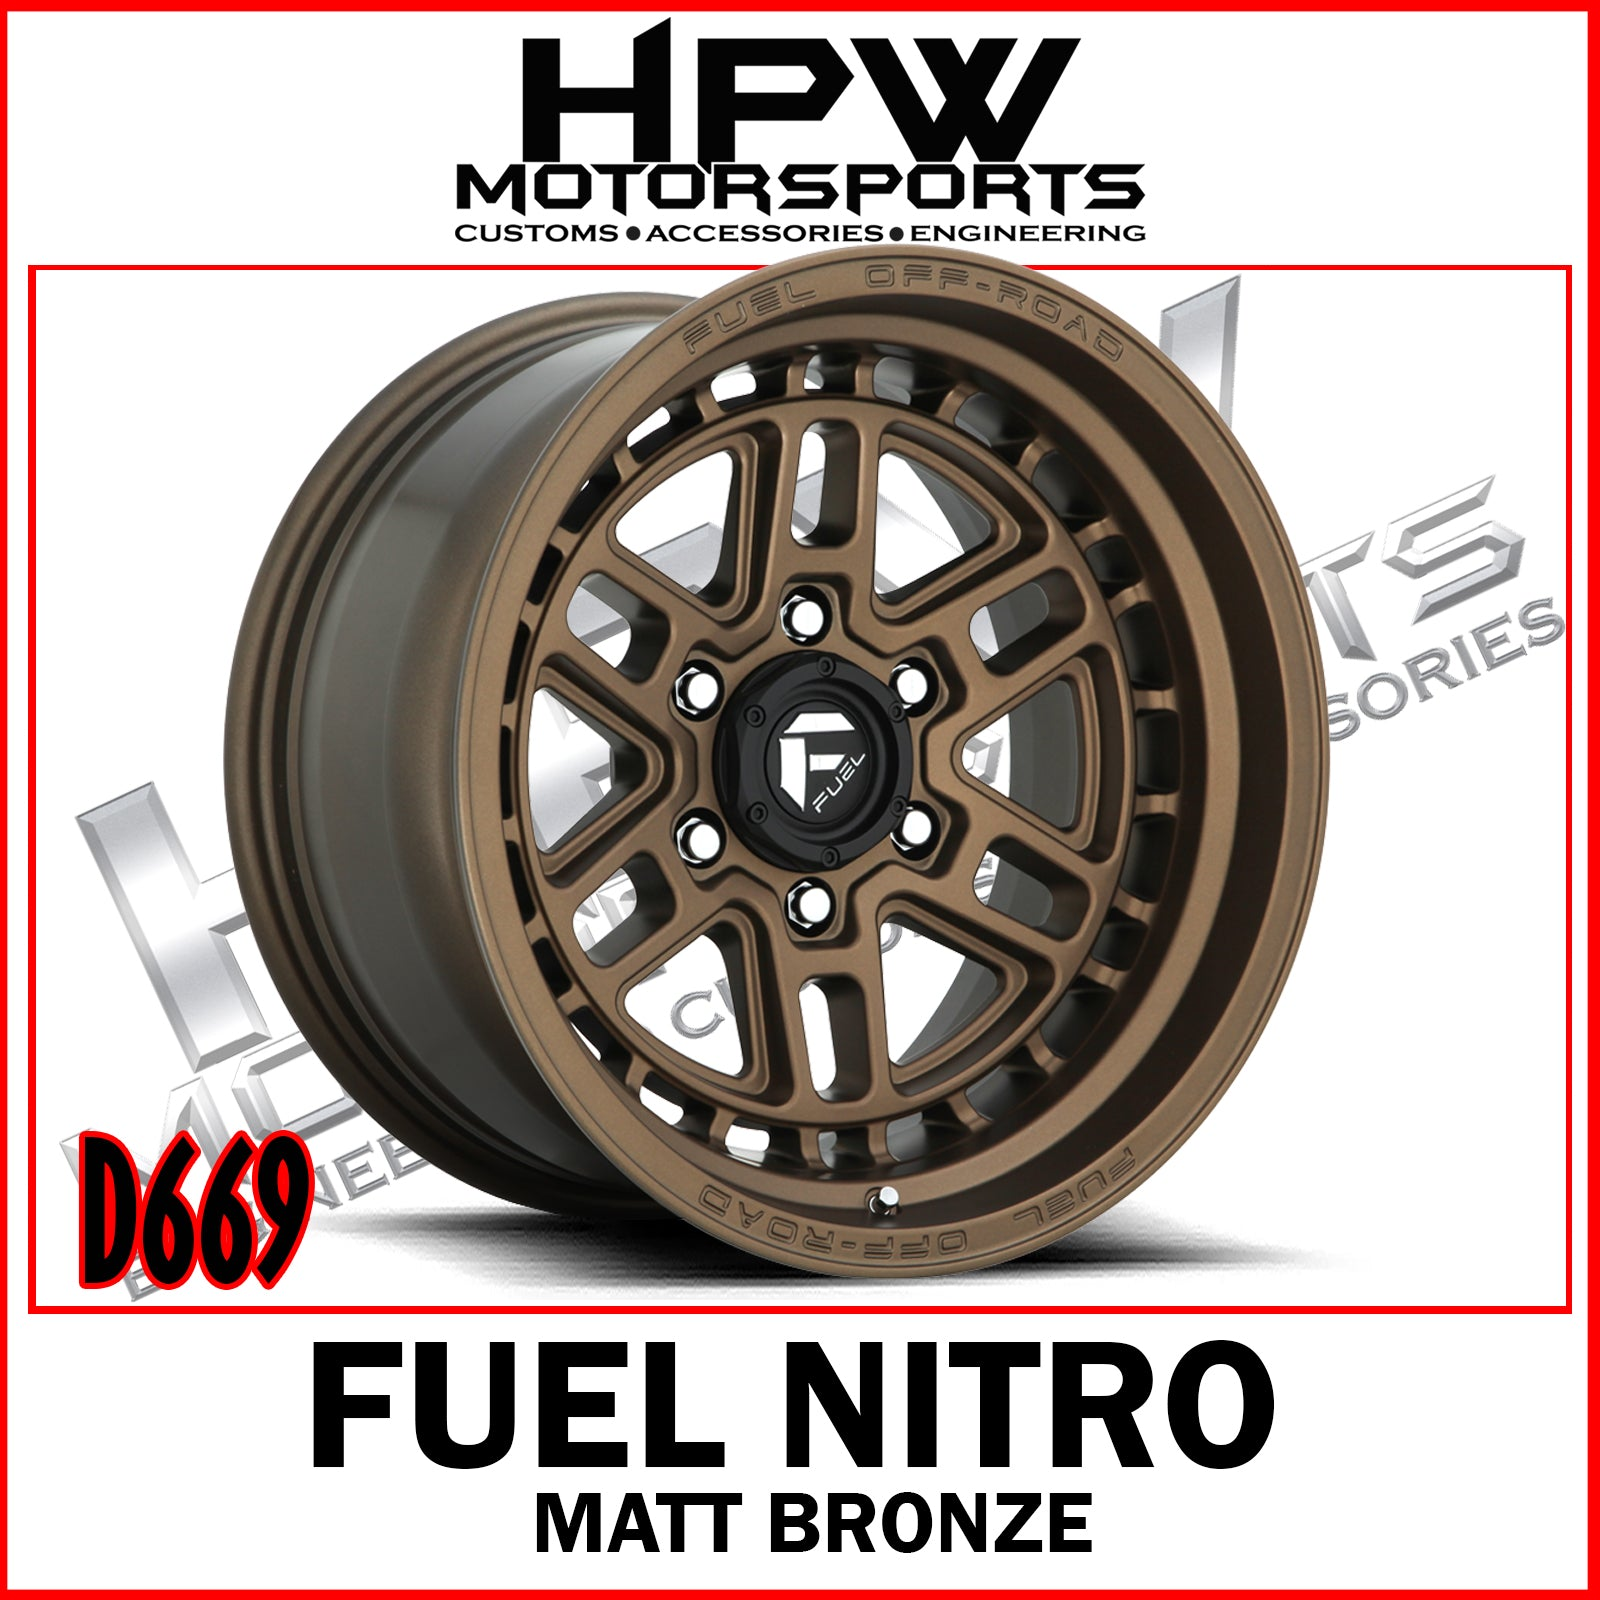 D669 FUEL NITRO - MATT BRONZE- Set of 4